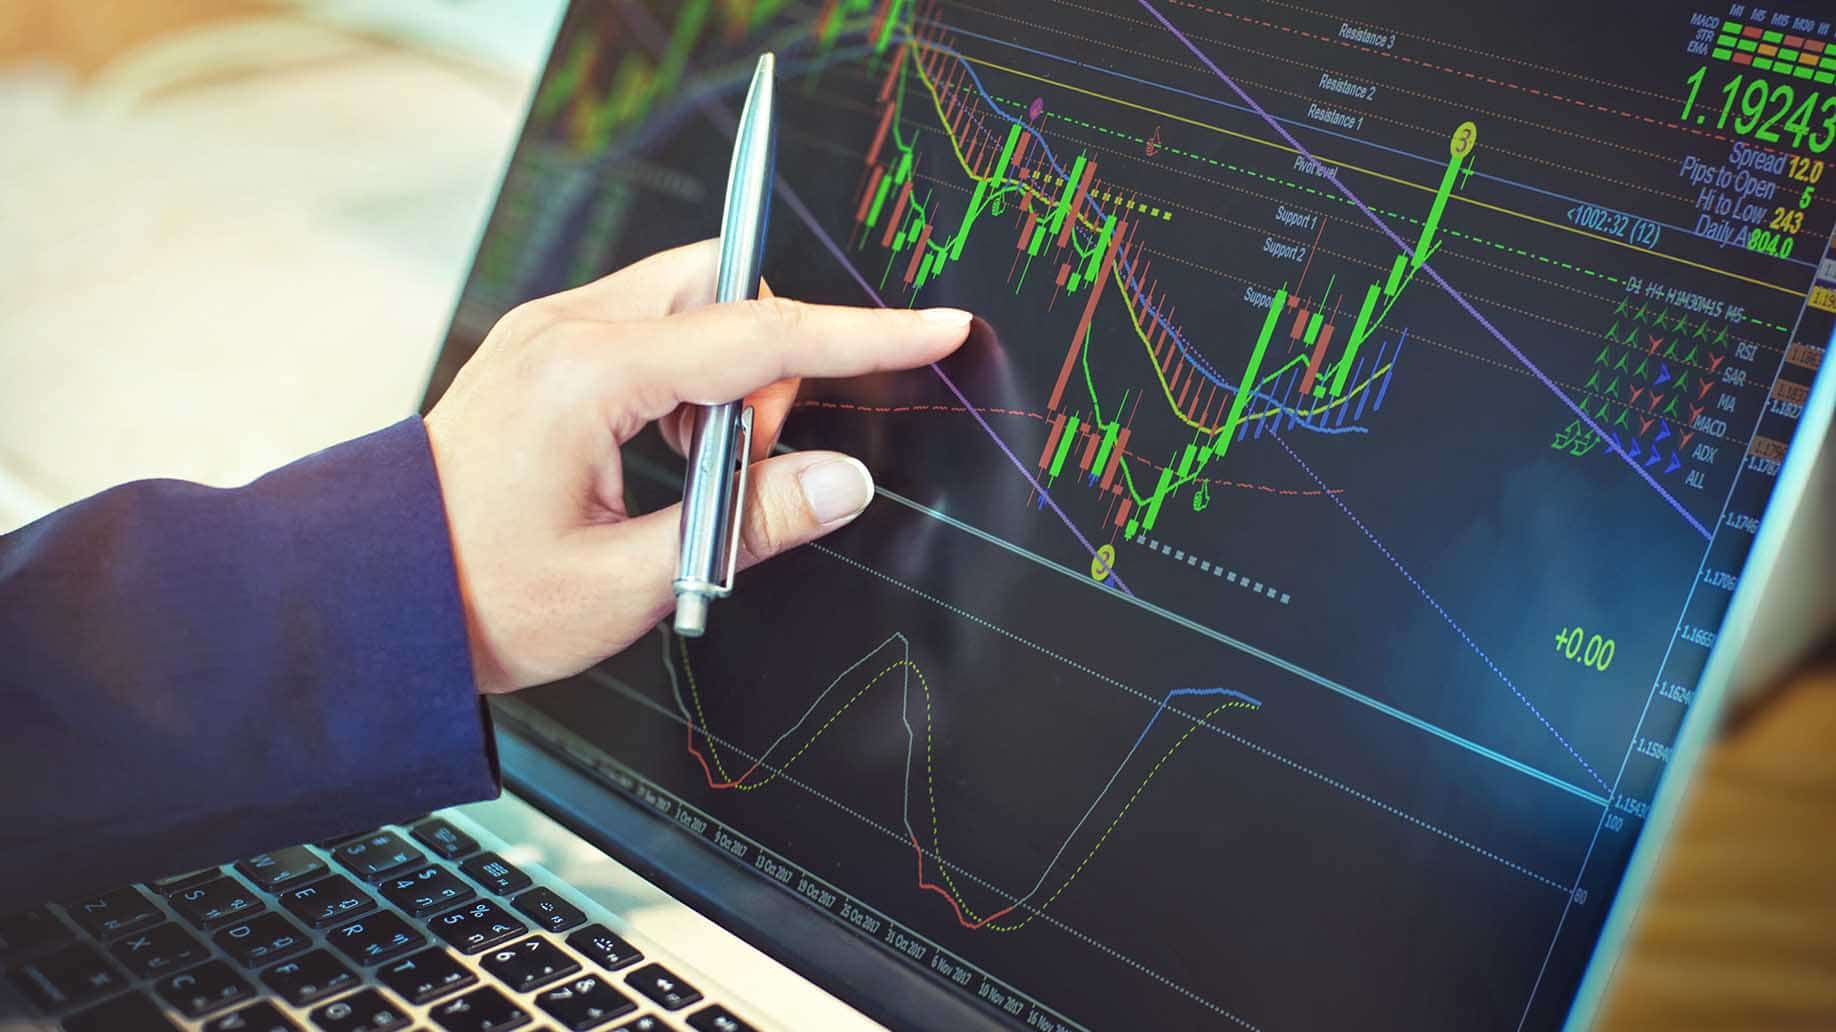 businessman working with stock trading on laptop